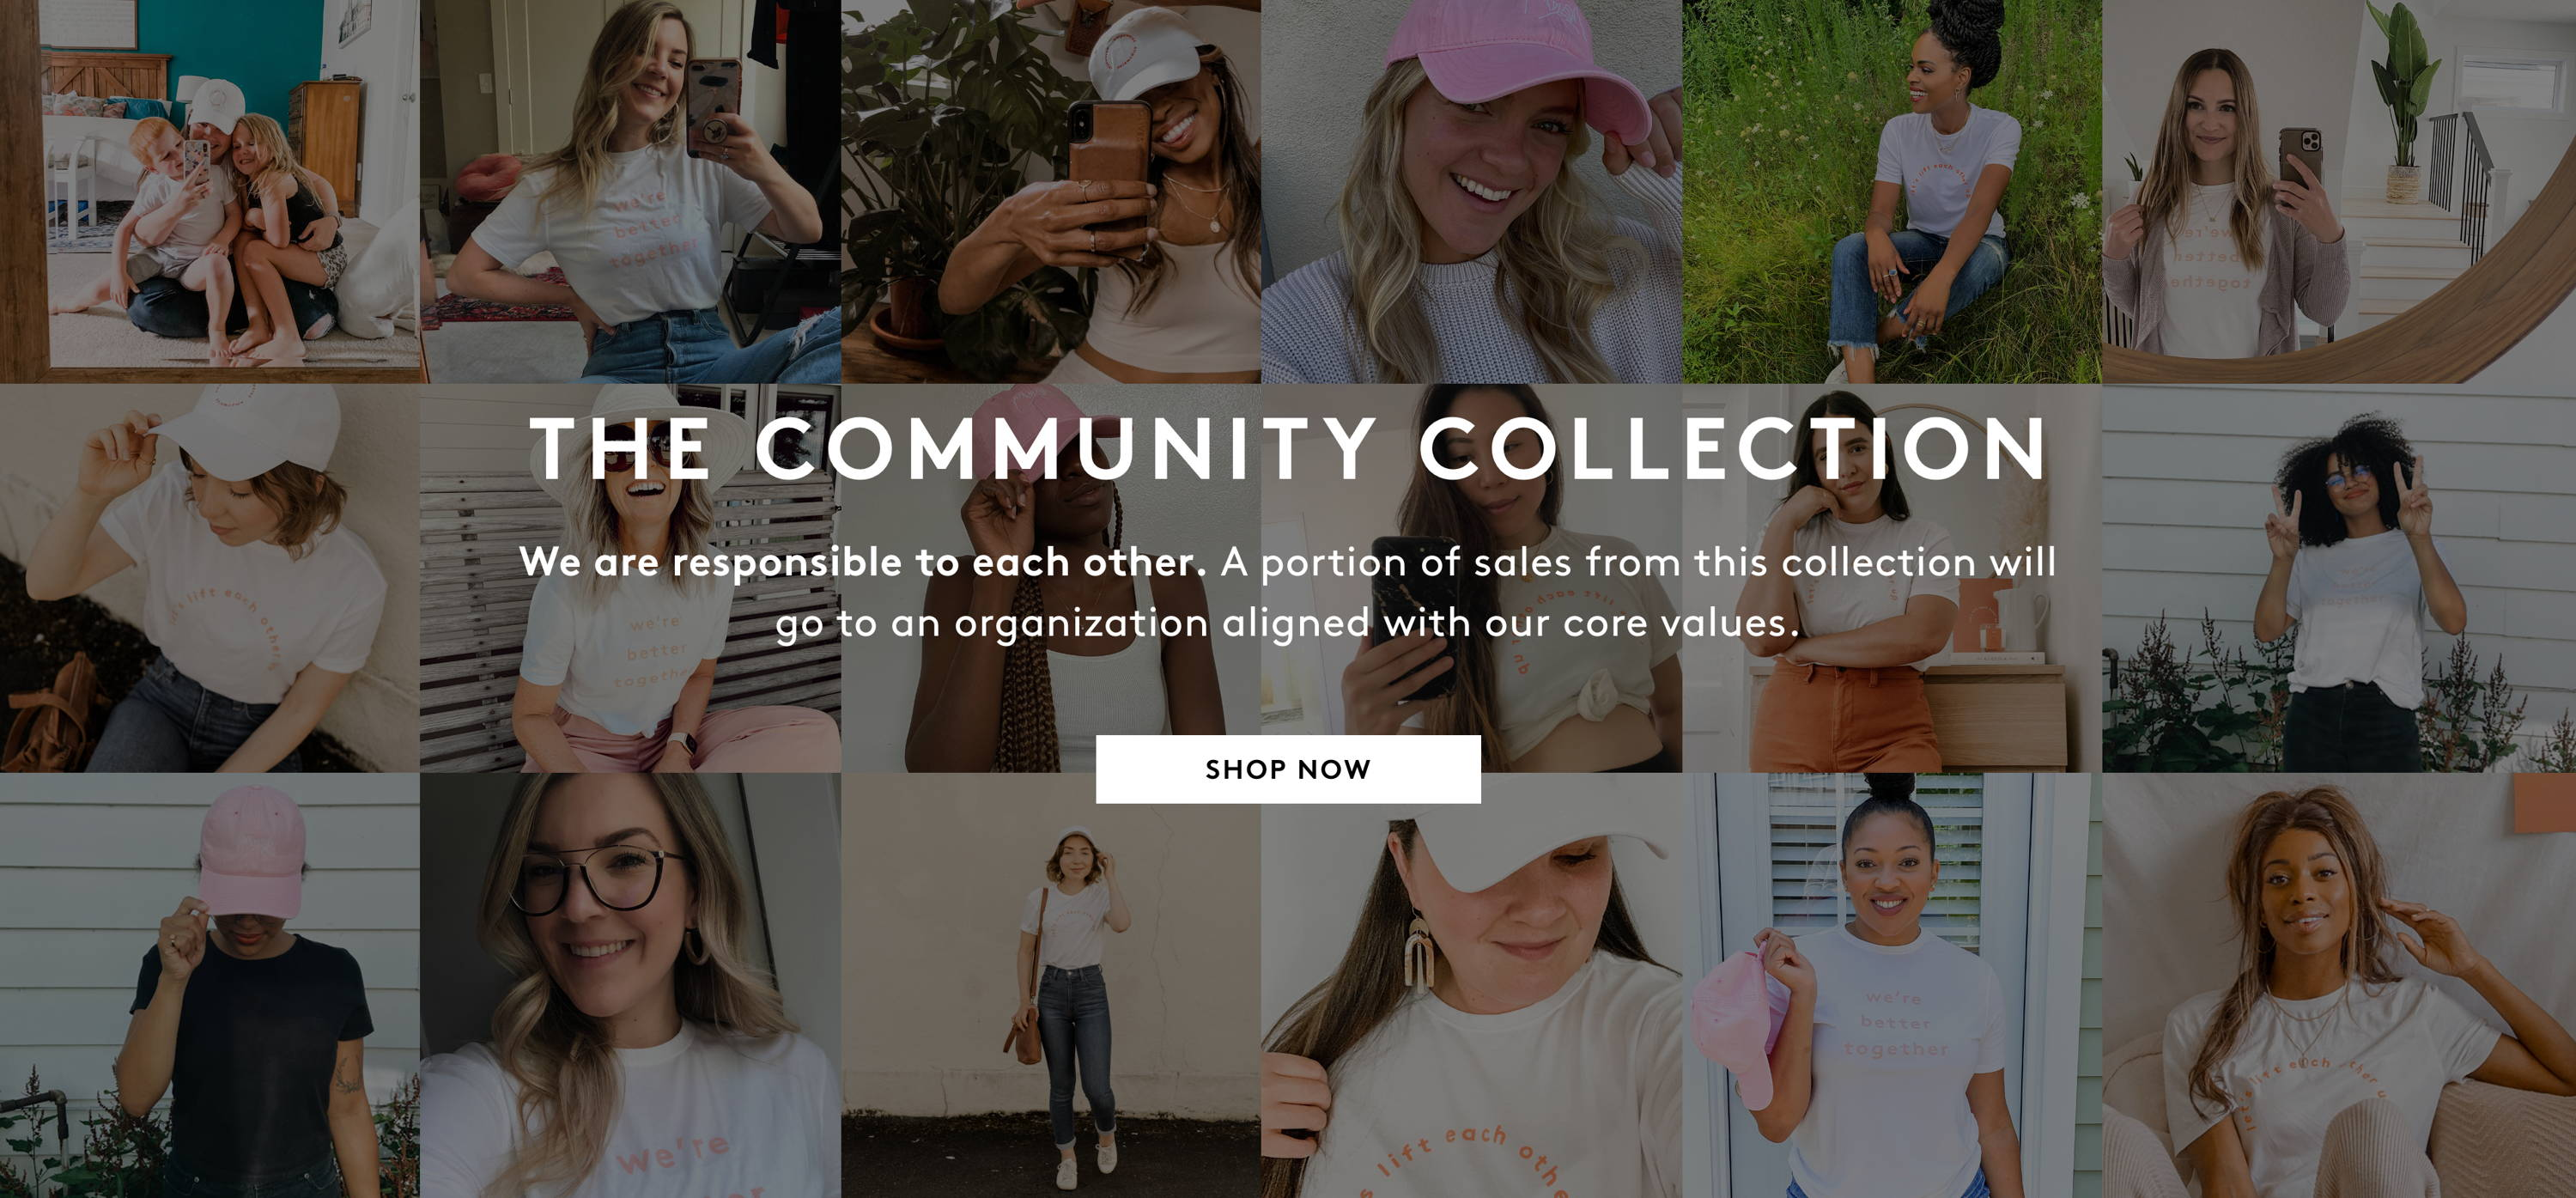 The Community Collection Shop Now